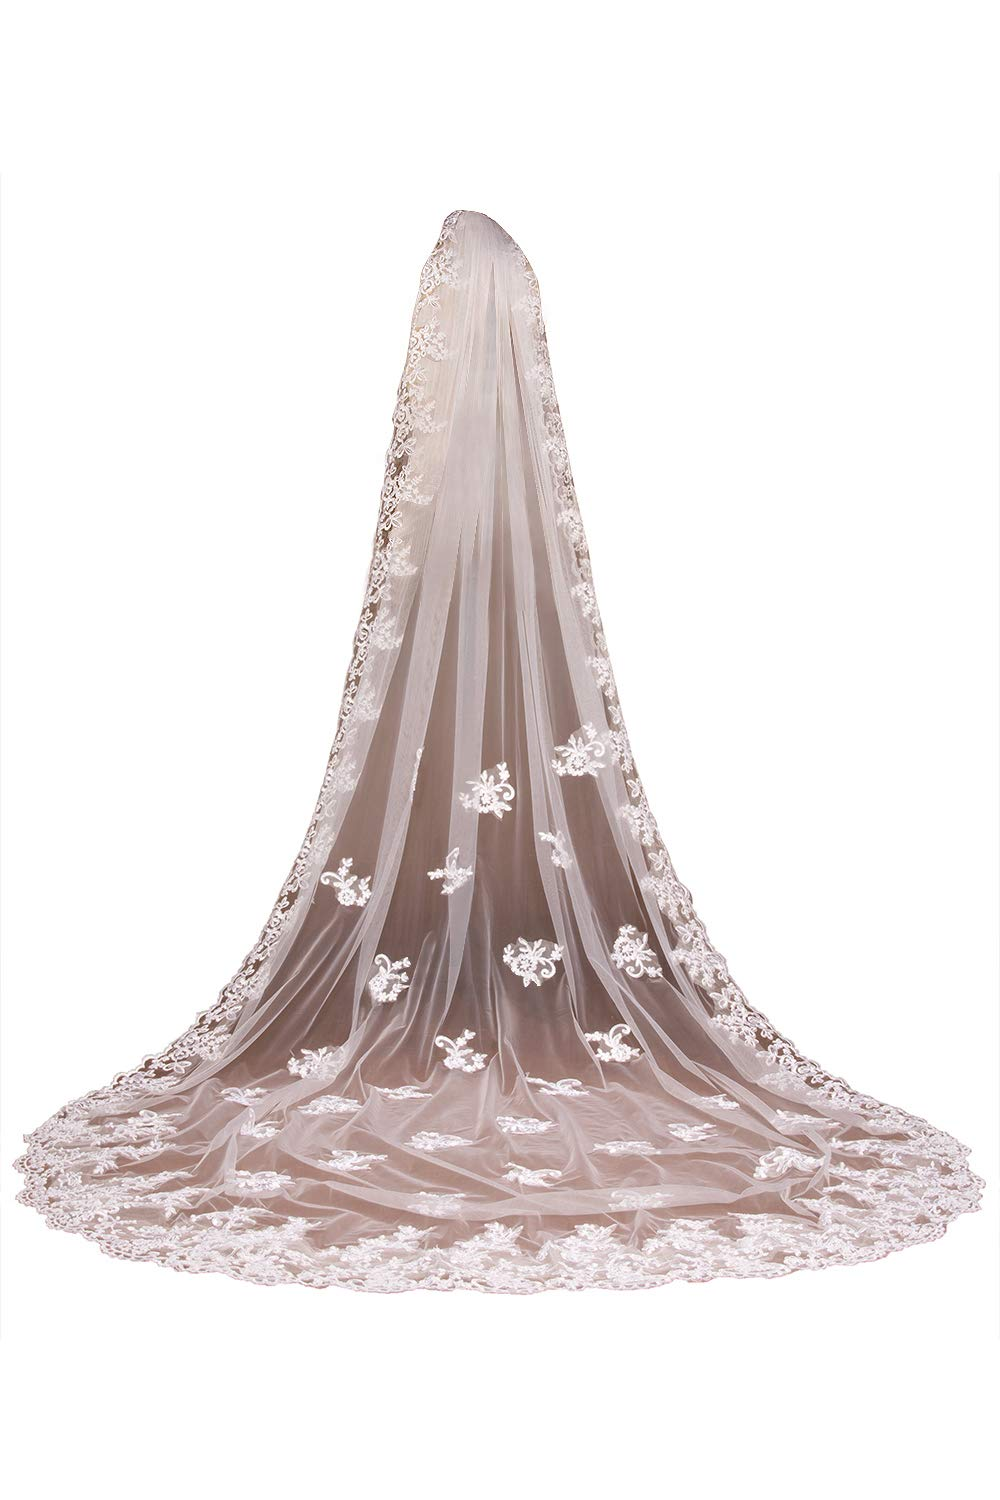 Babyonlinedress Soft Tulle Lace Long Veil For Wedding Brides,Ivory.